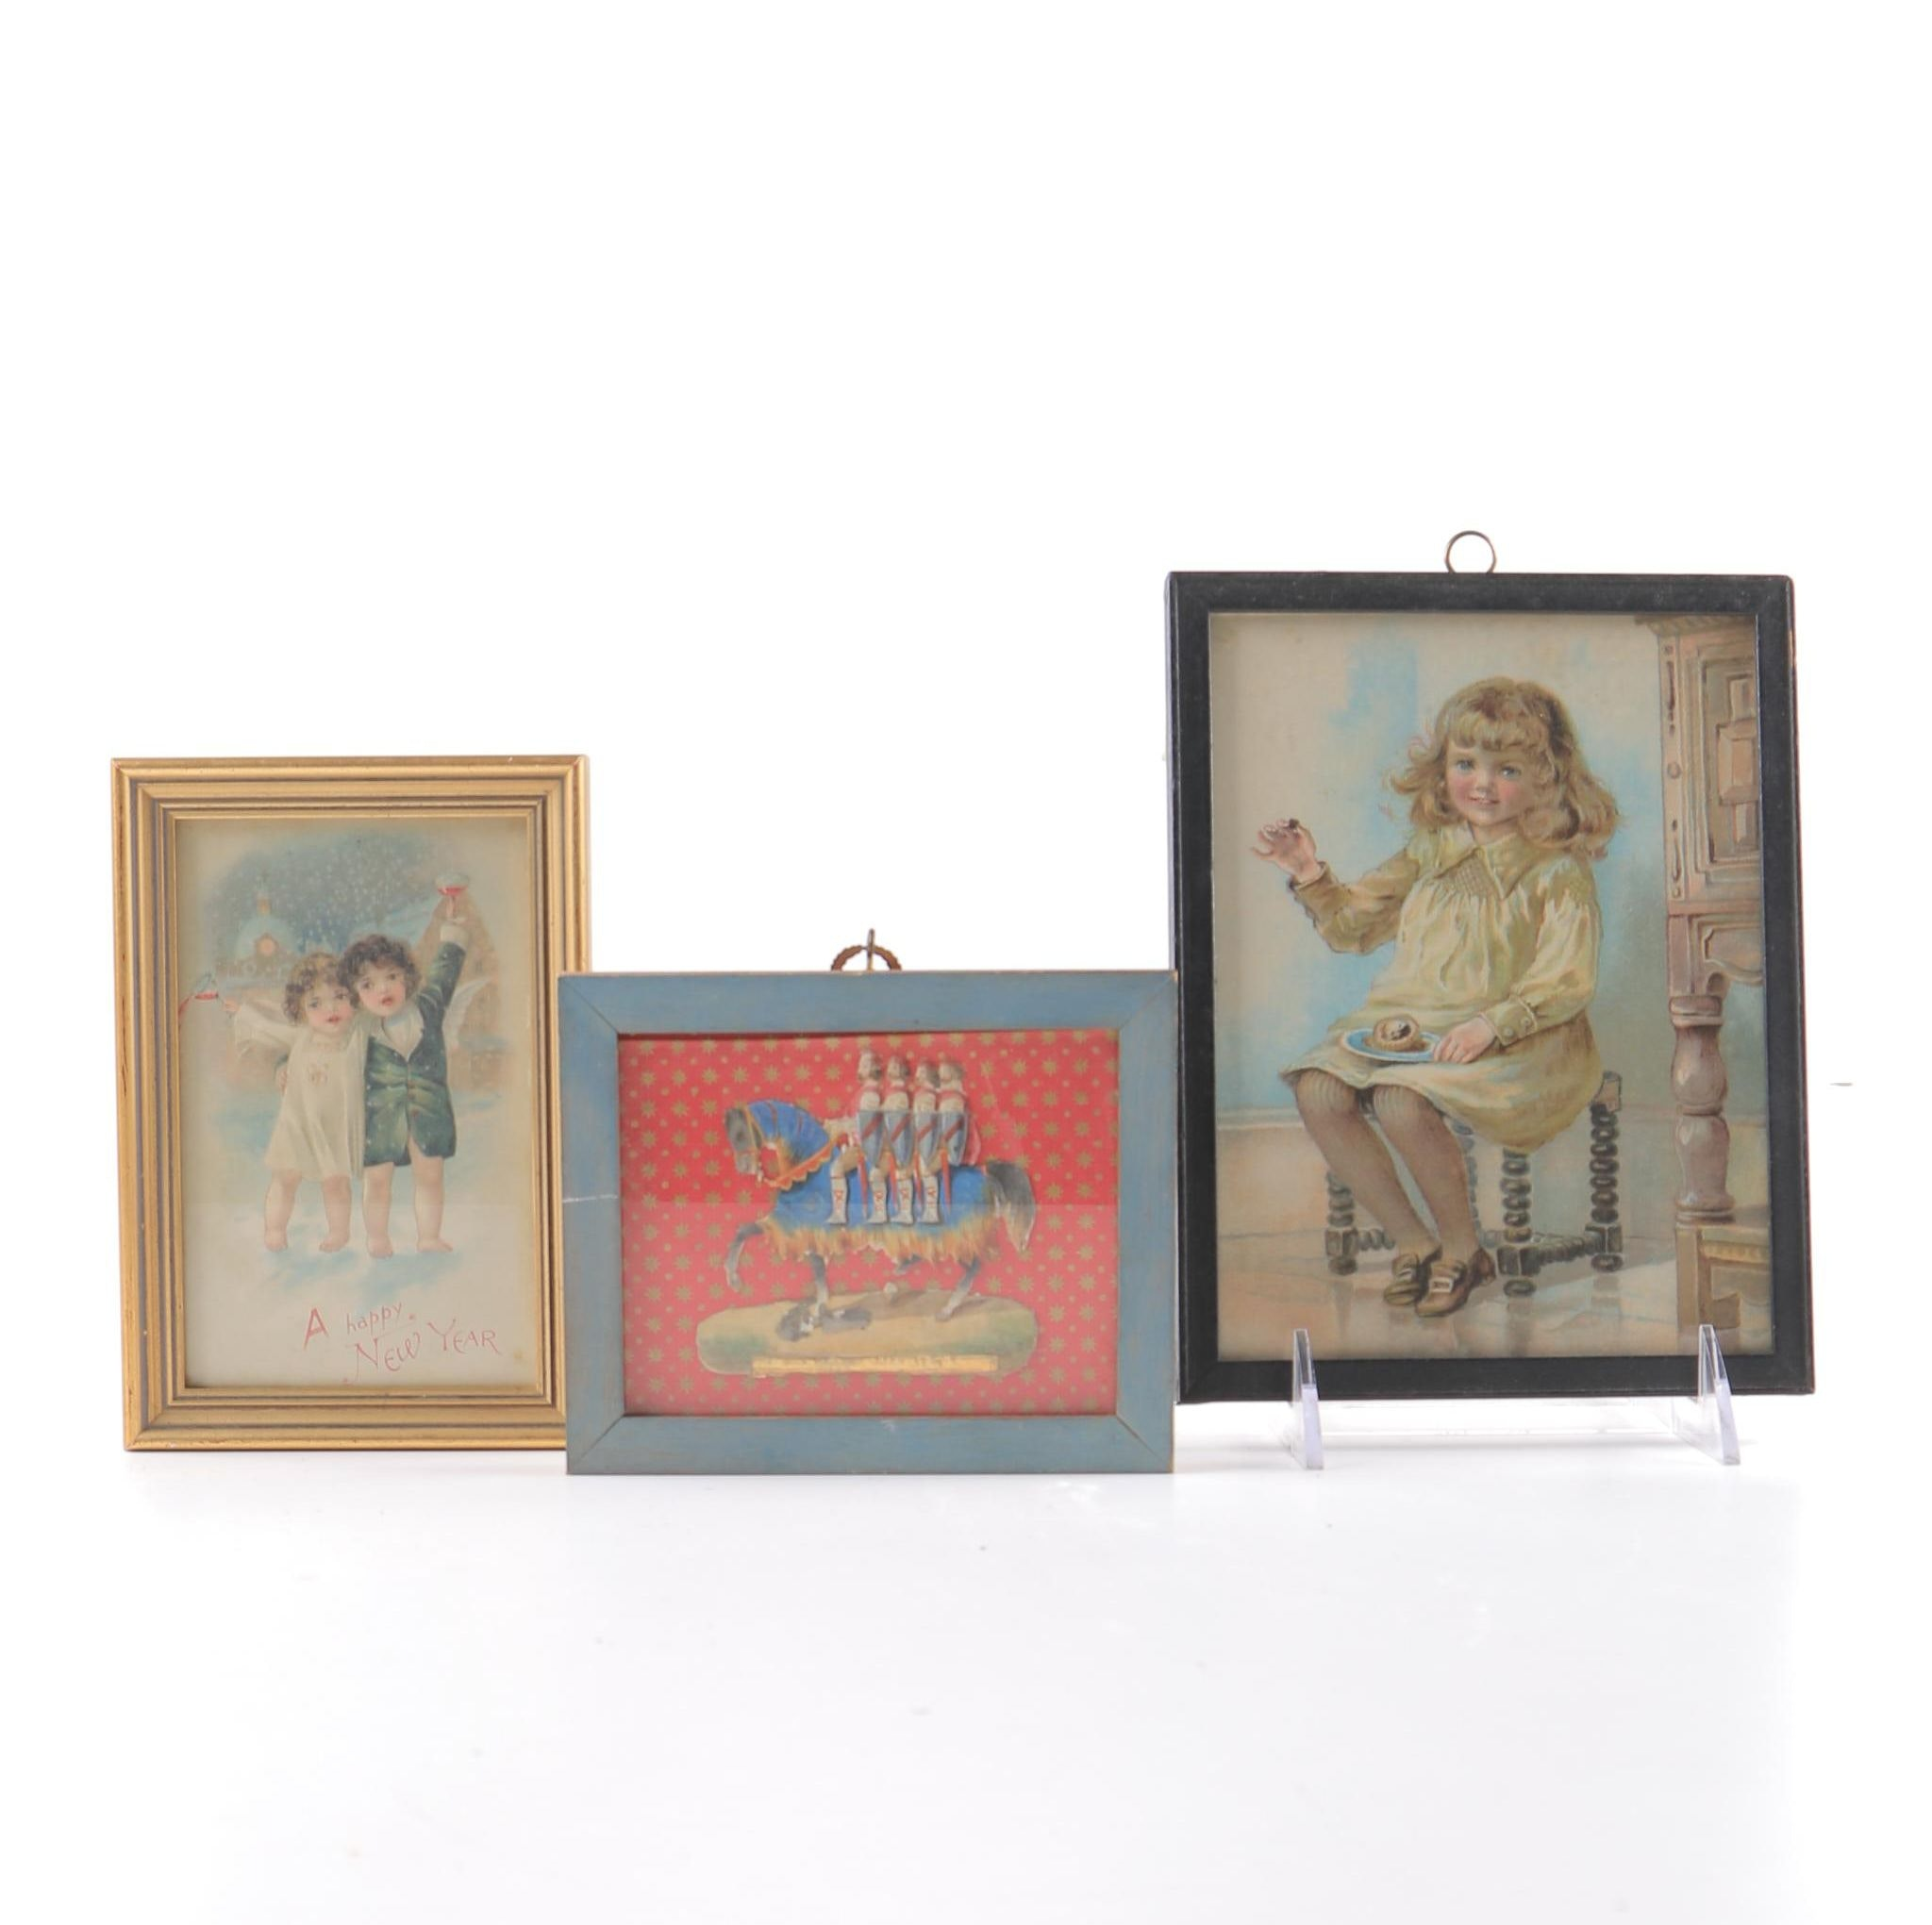 Chromolithograph Prints and Hand-Colored Knight Artwork